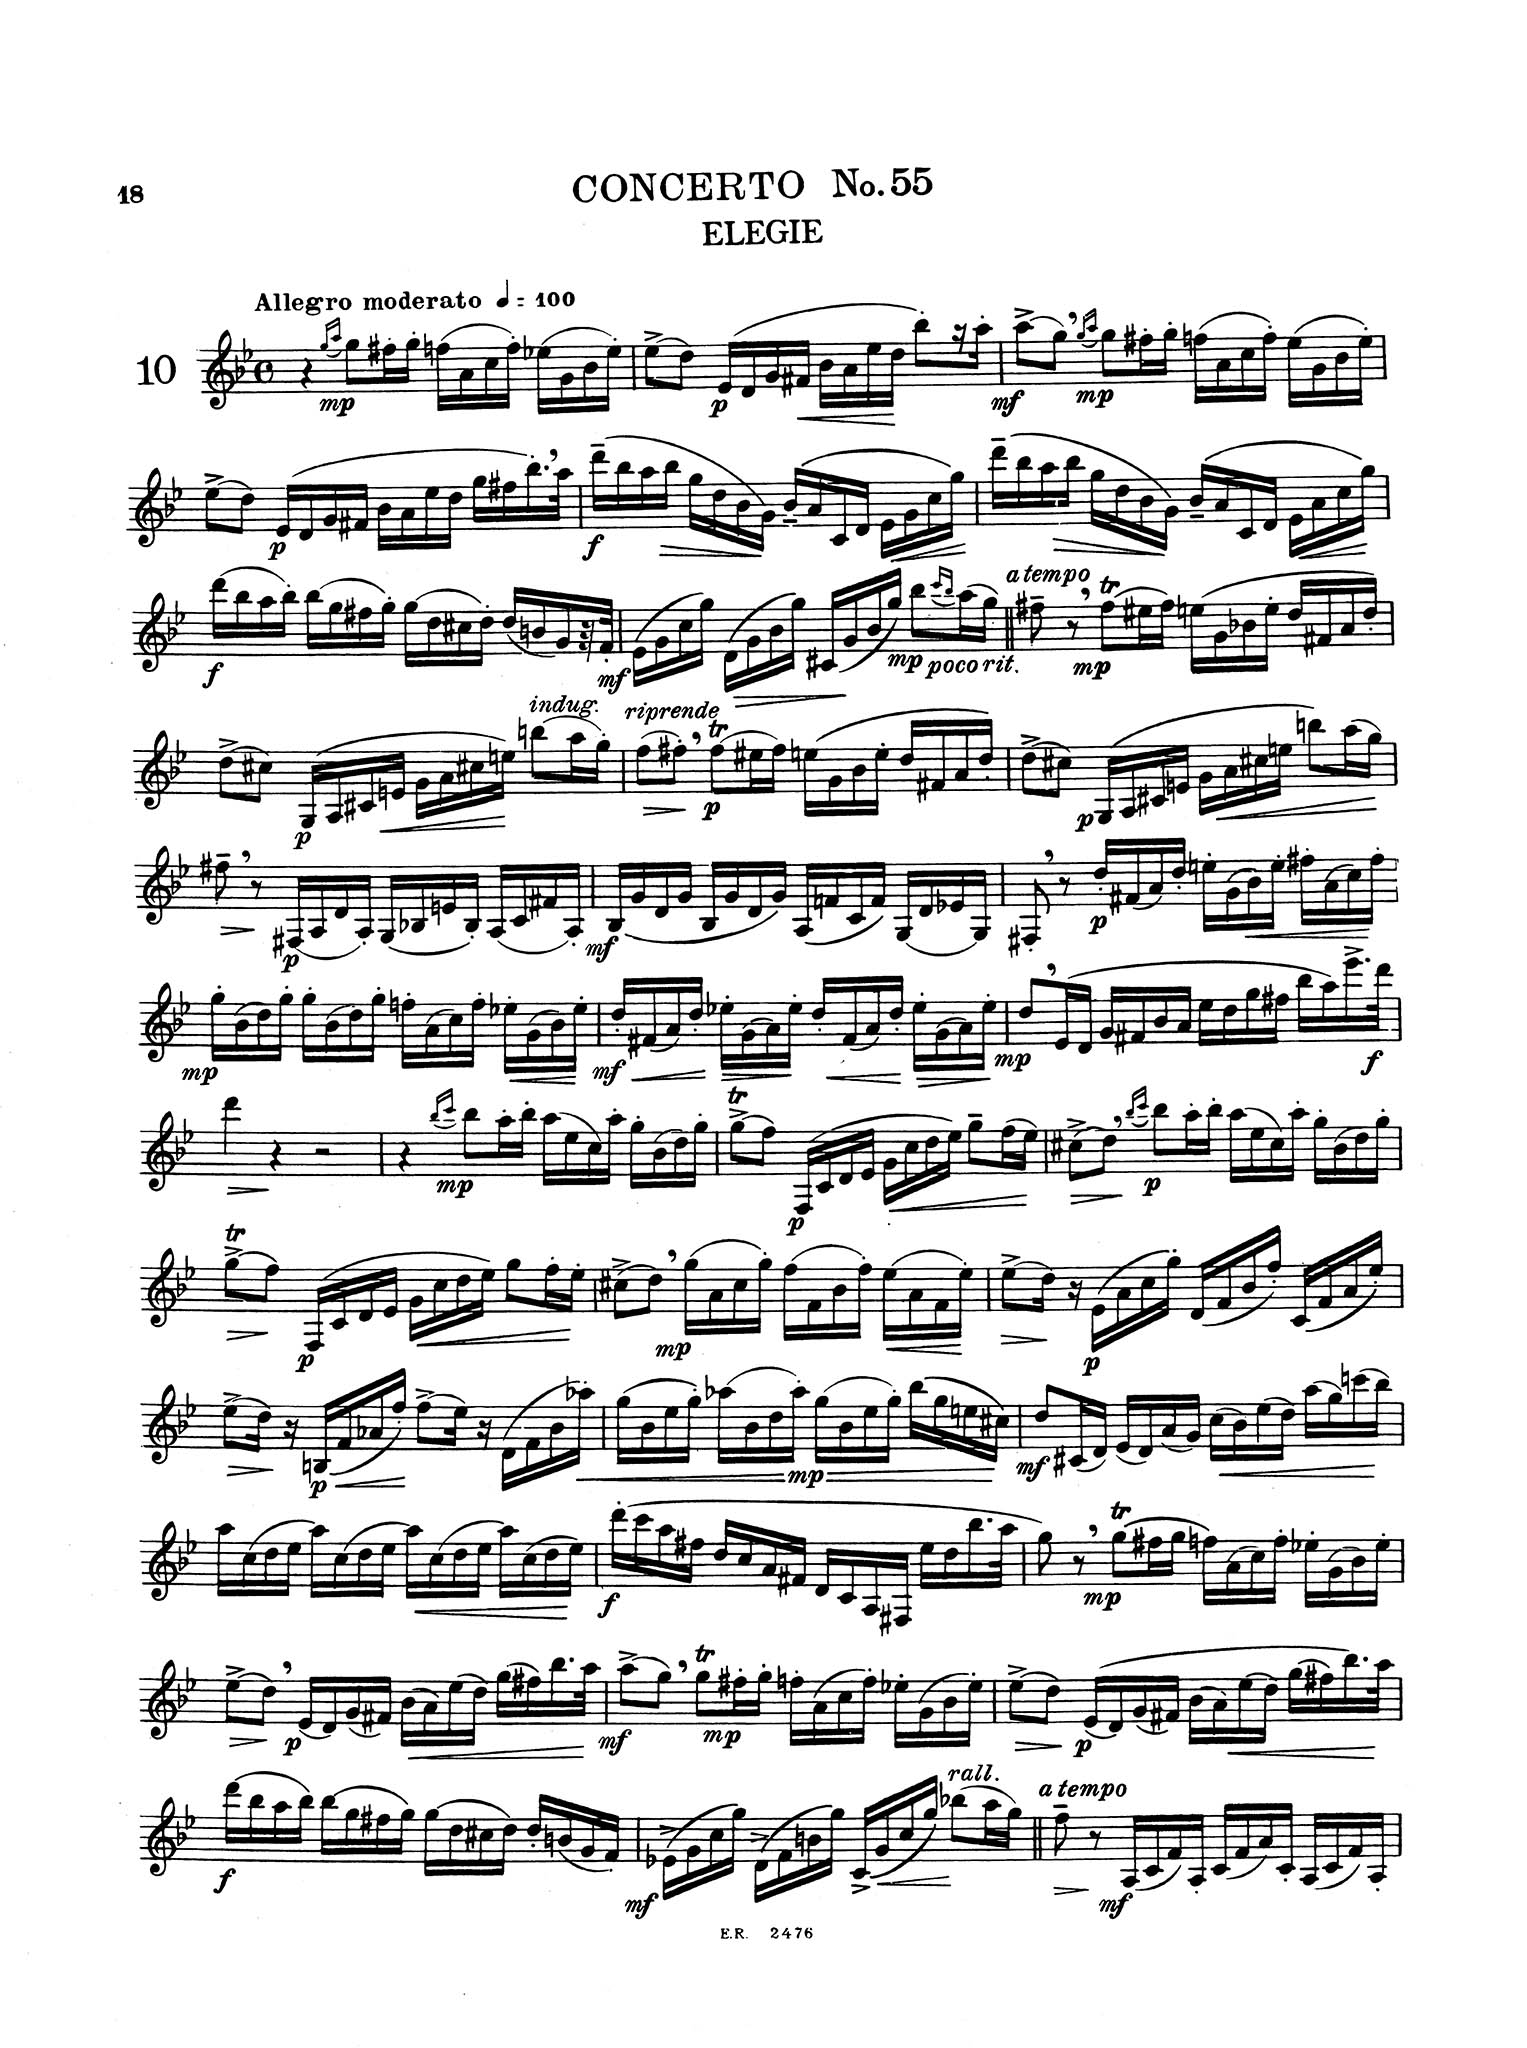 16 Grand Concert Studies for Clarinet - Page 18